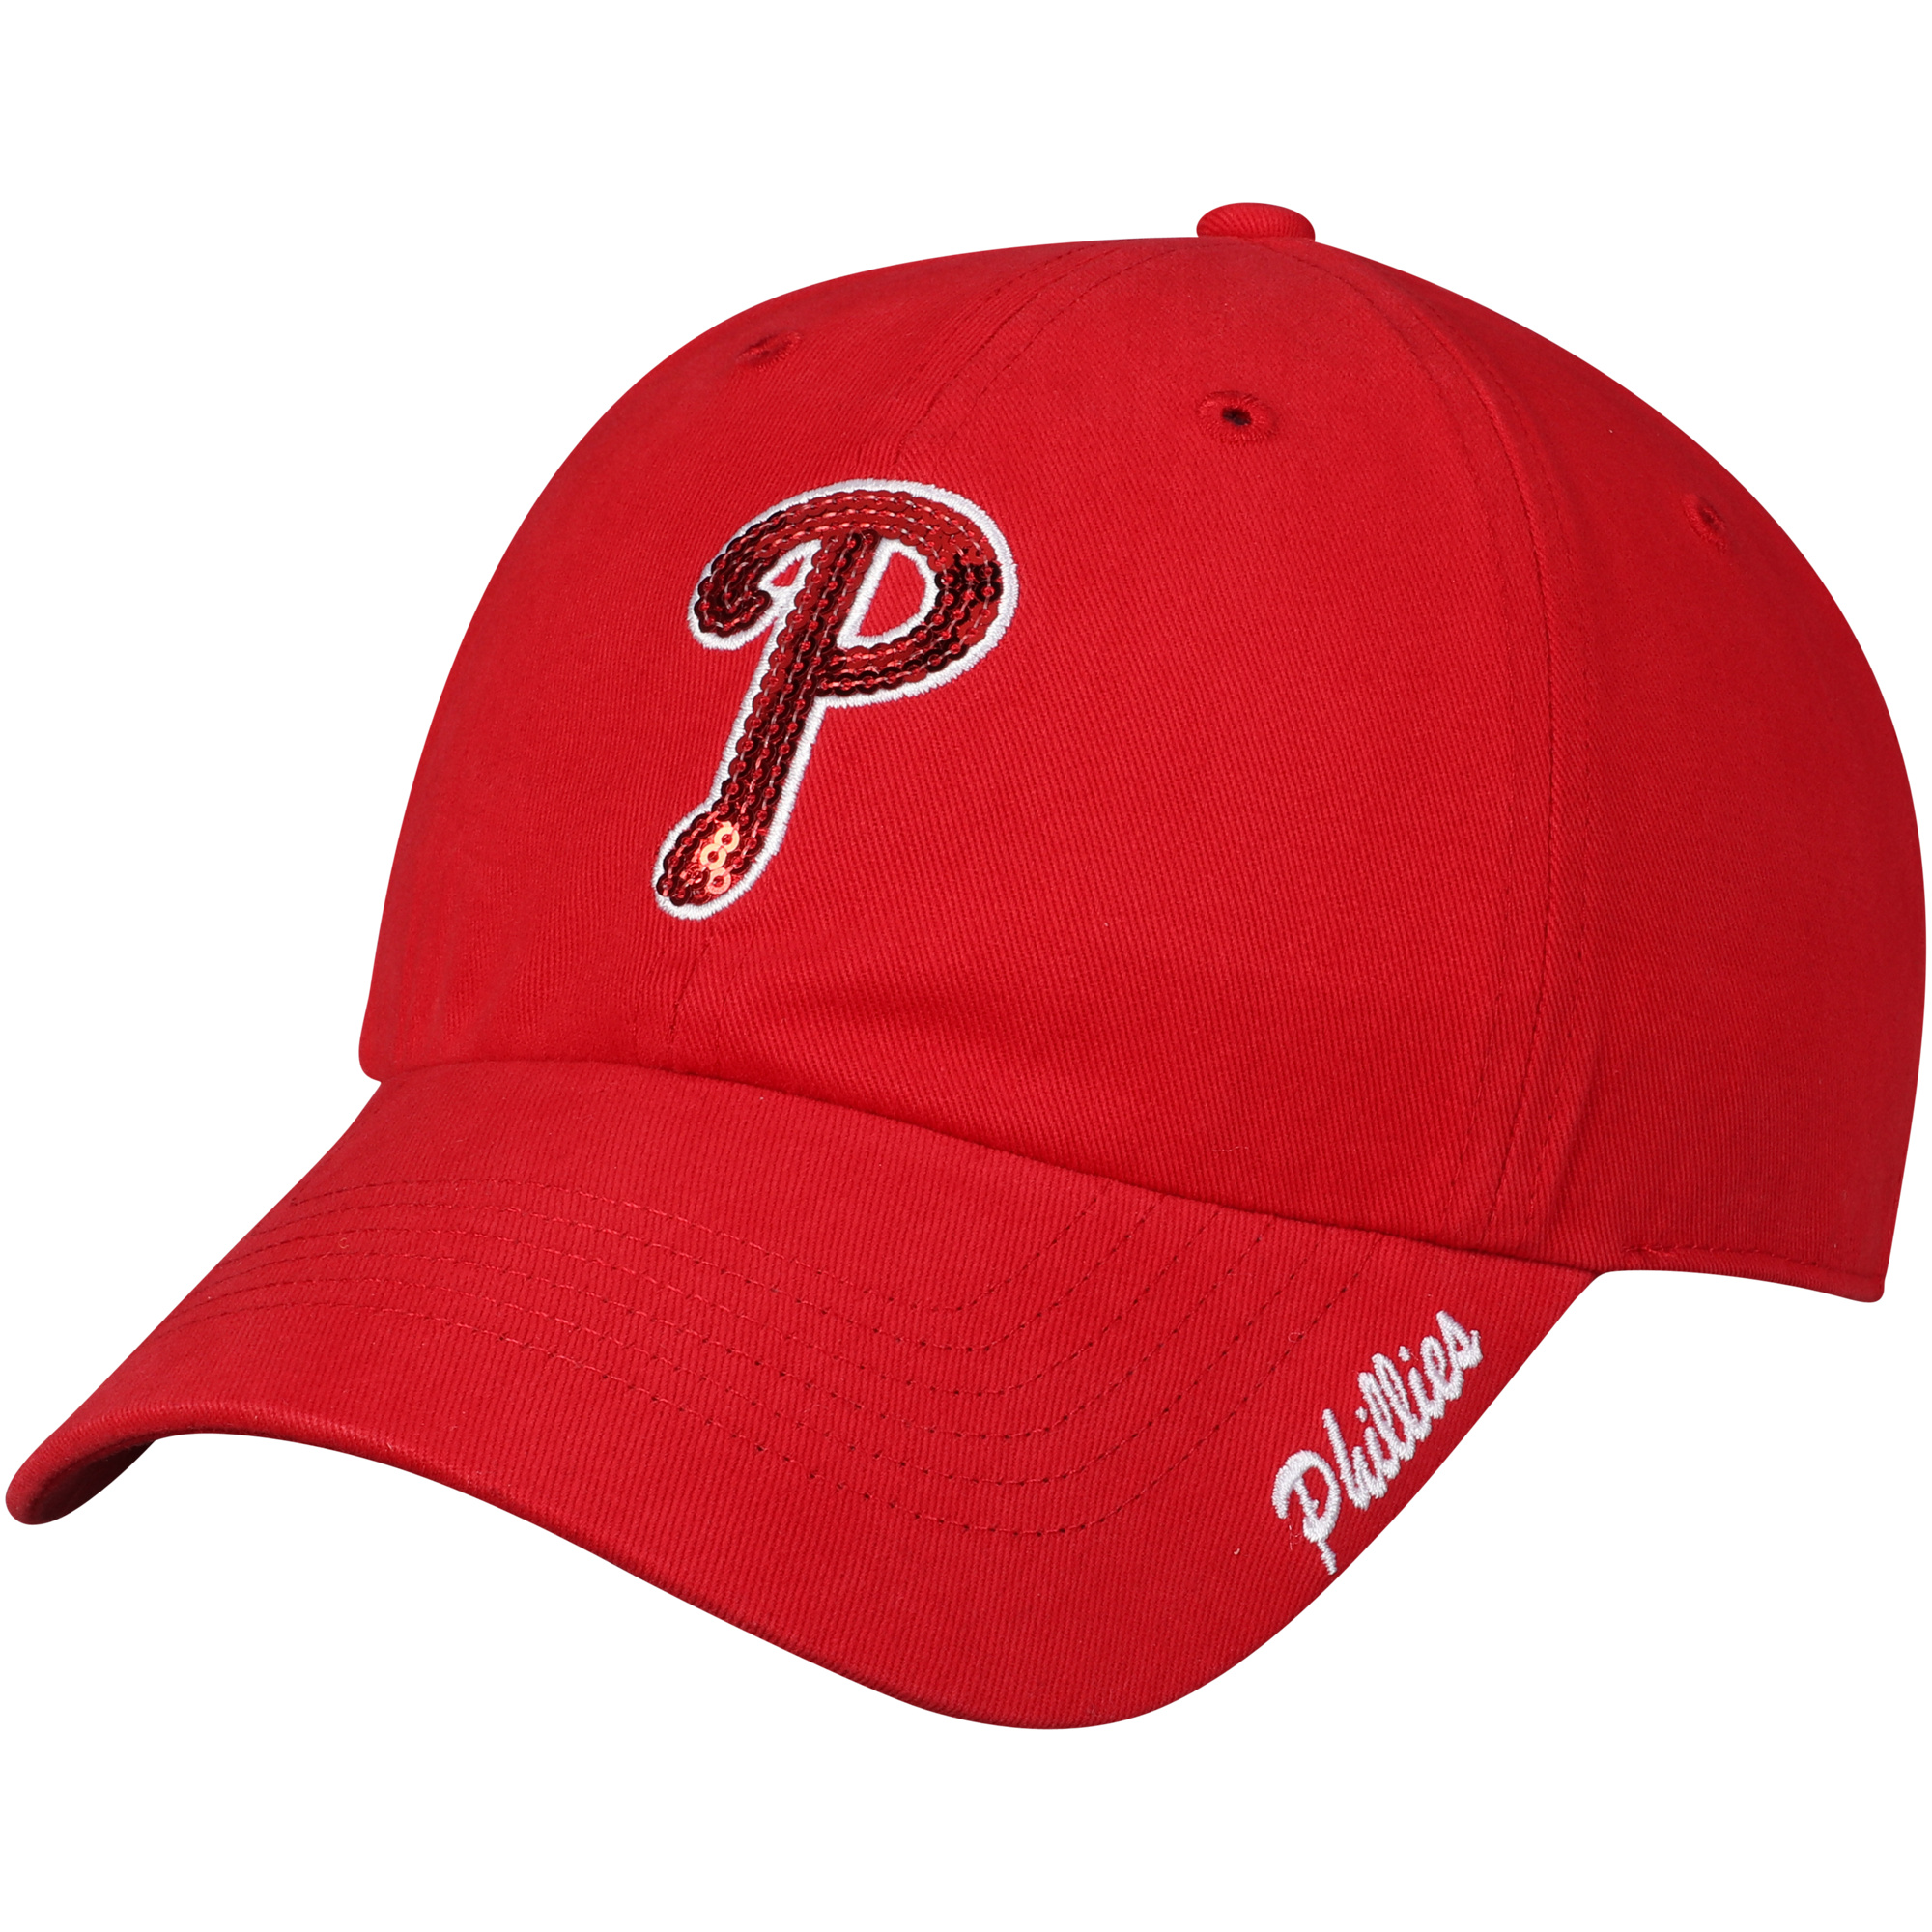 Women's Fan Favorite Red Philadelphia Phillies Sparkle Adjustable Hat - OSFA